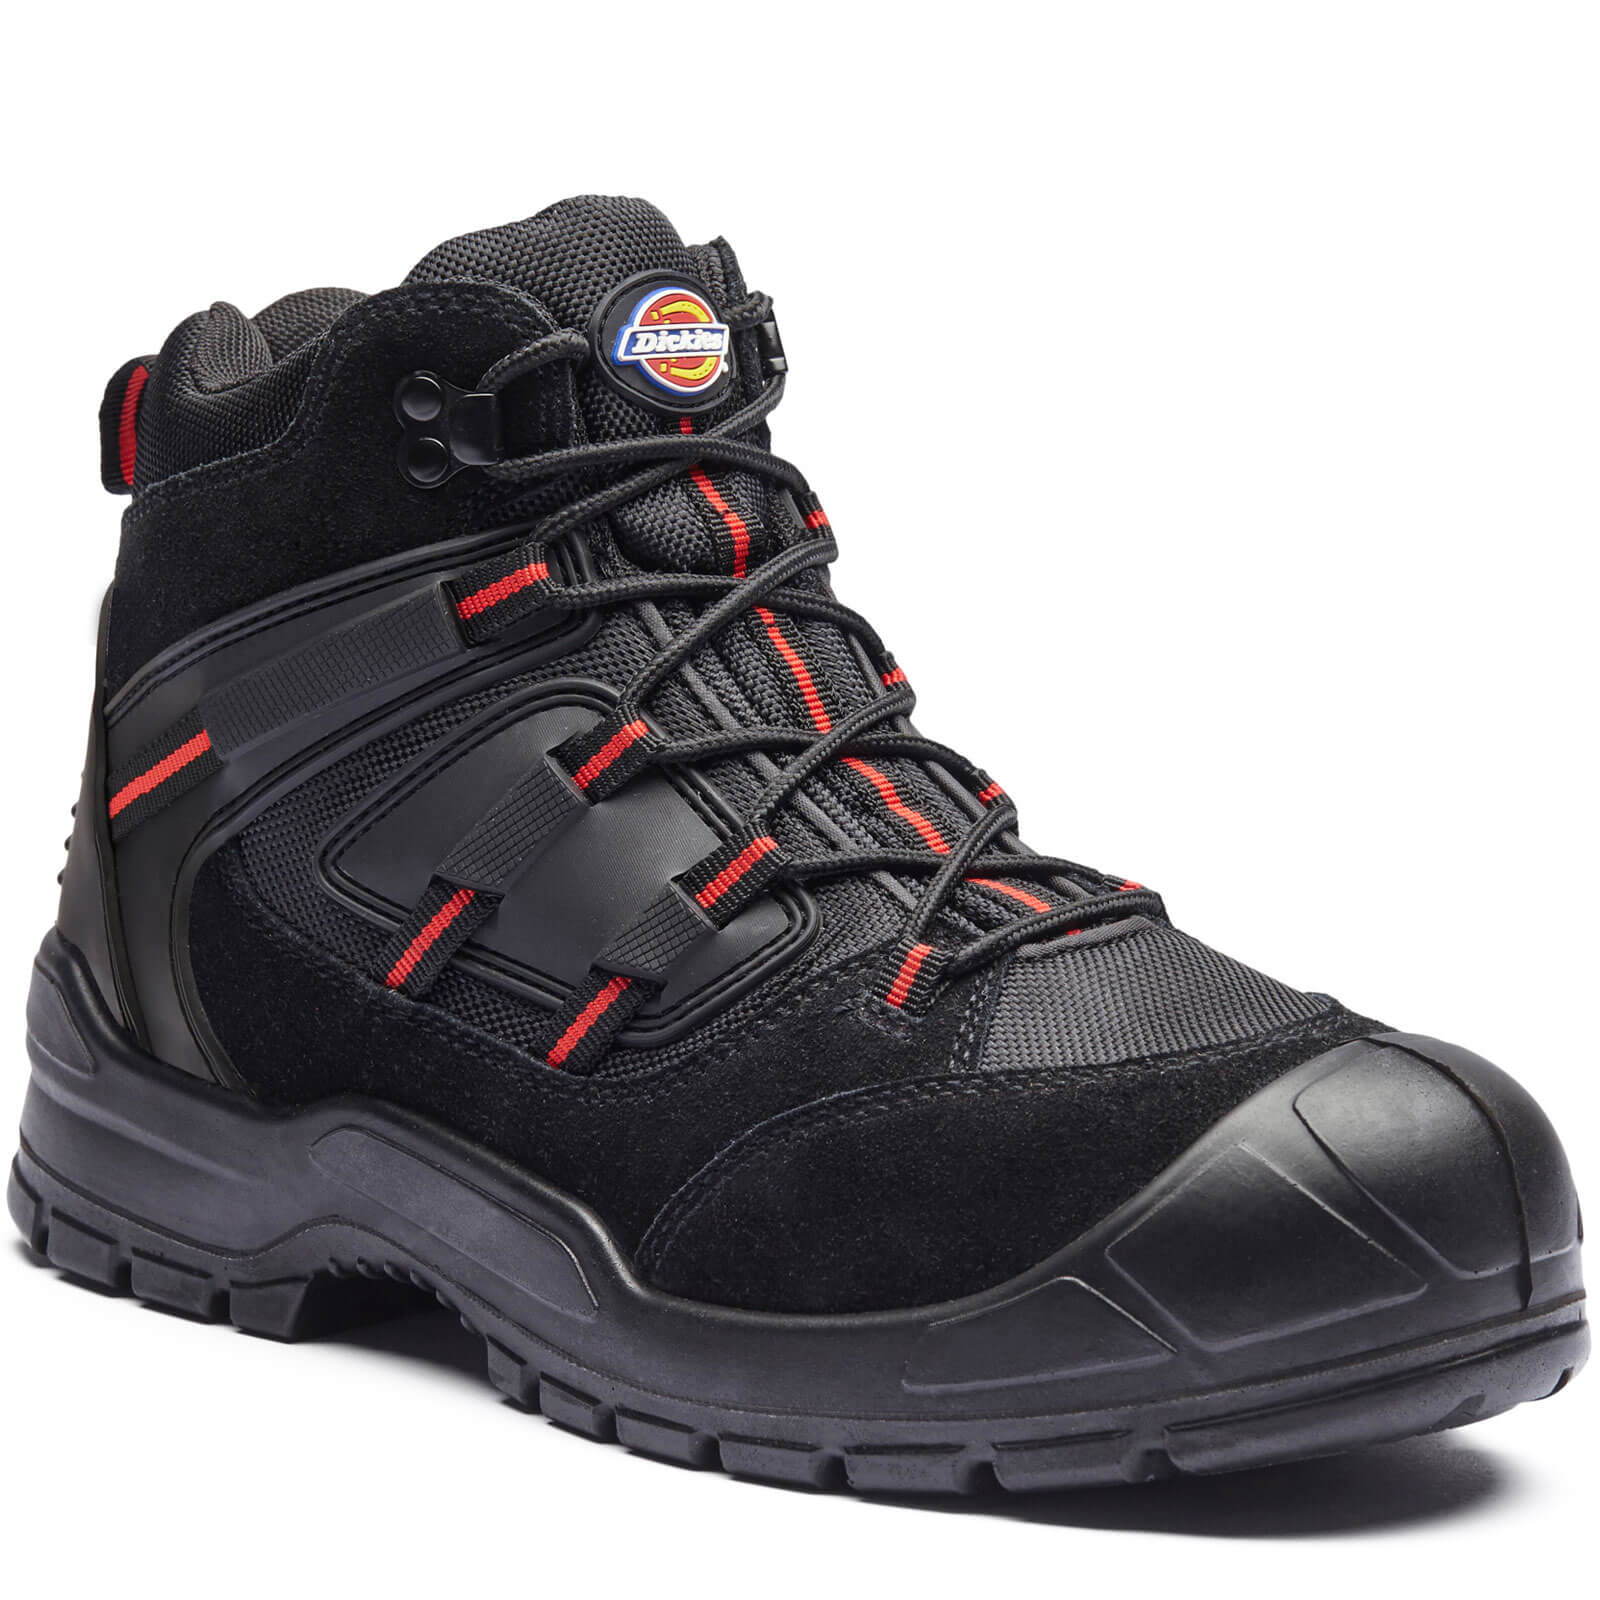 Dickies Mens Everyday Safety Work Boots Black